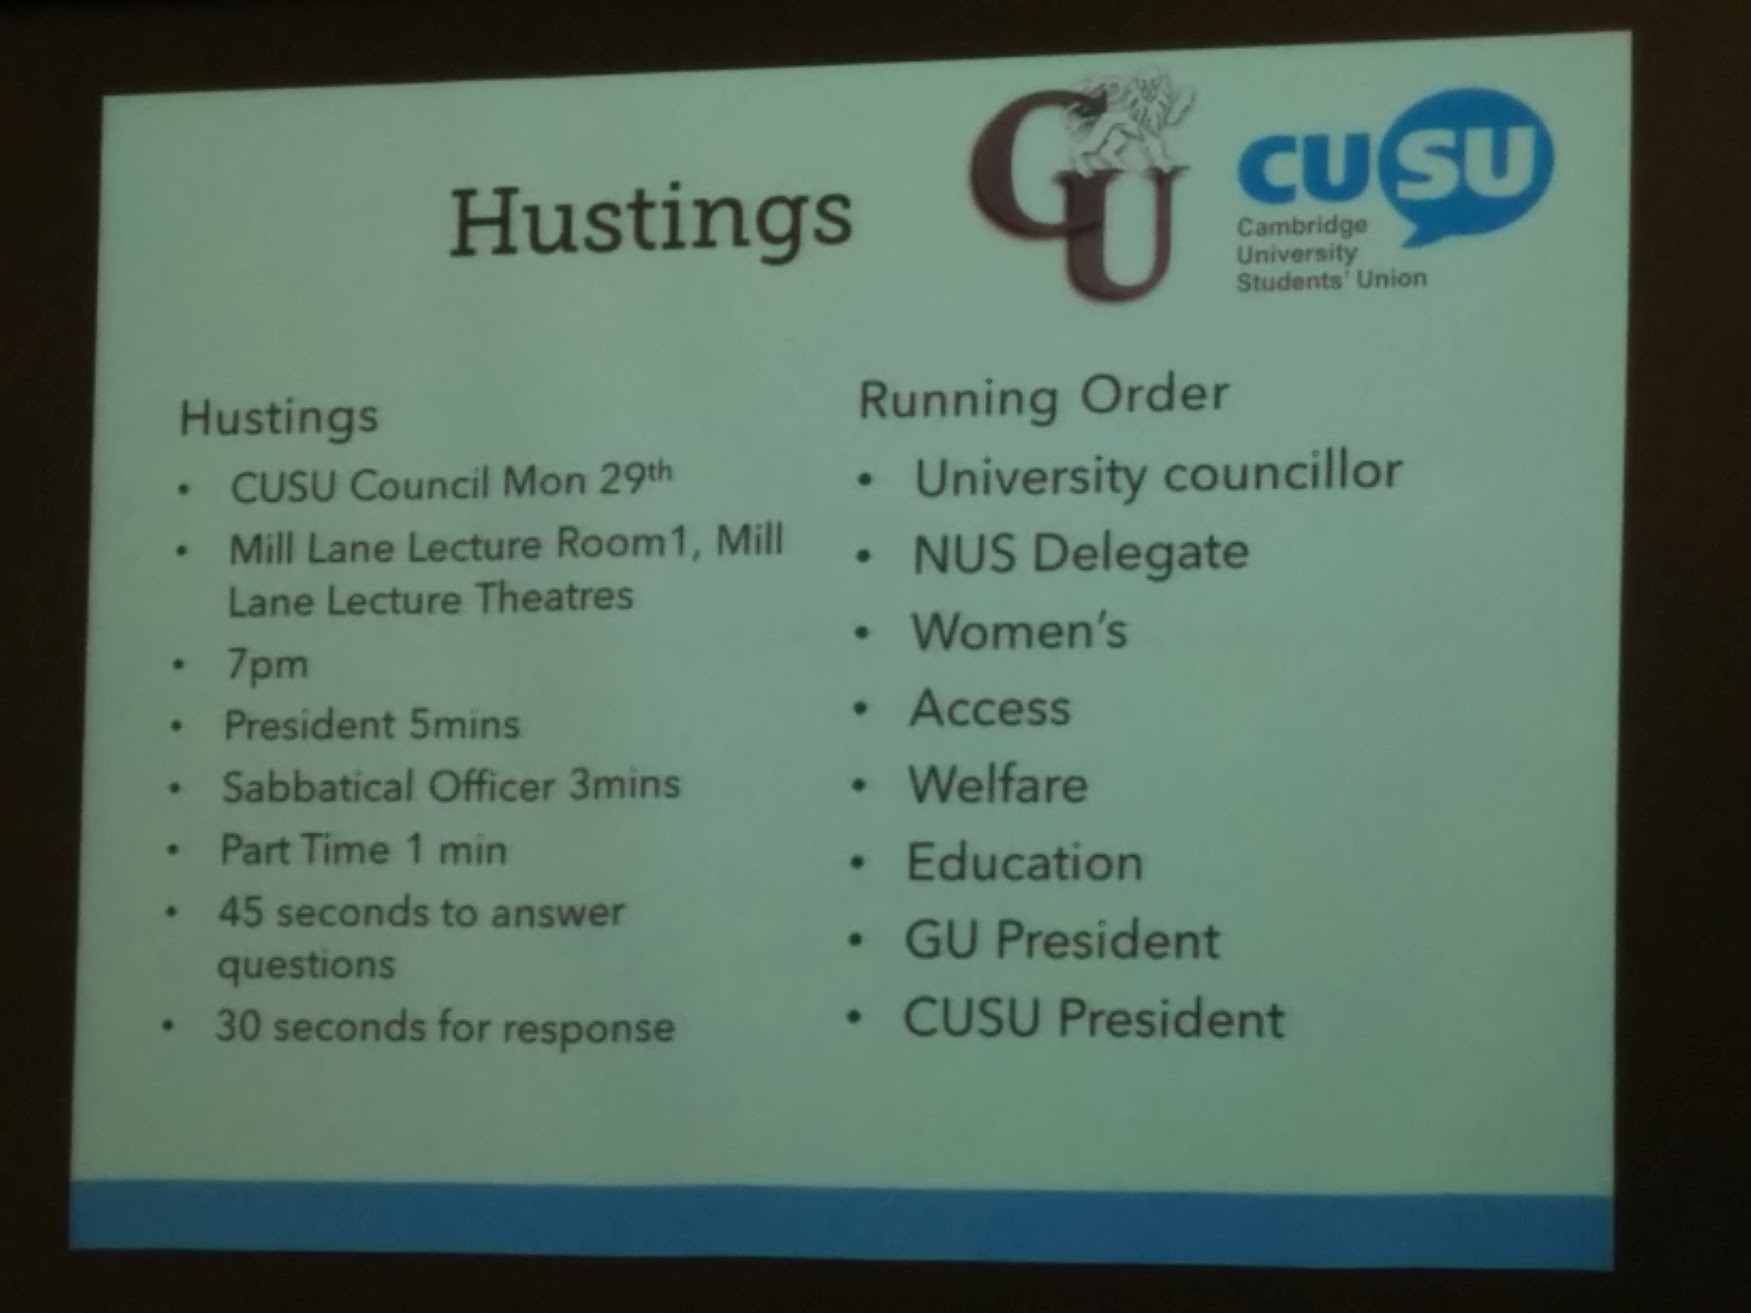 This was the original briefing for today's hustings last Wednesday